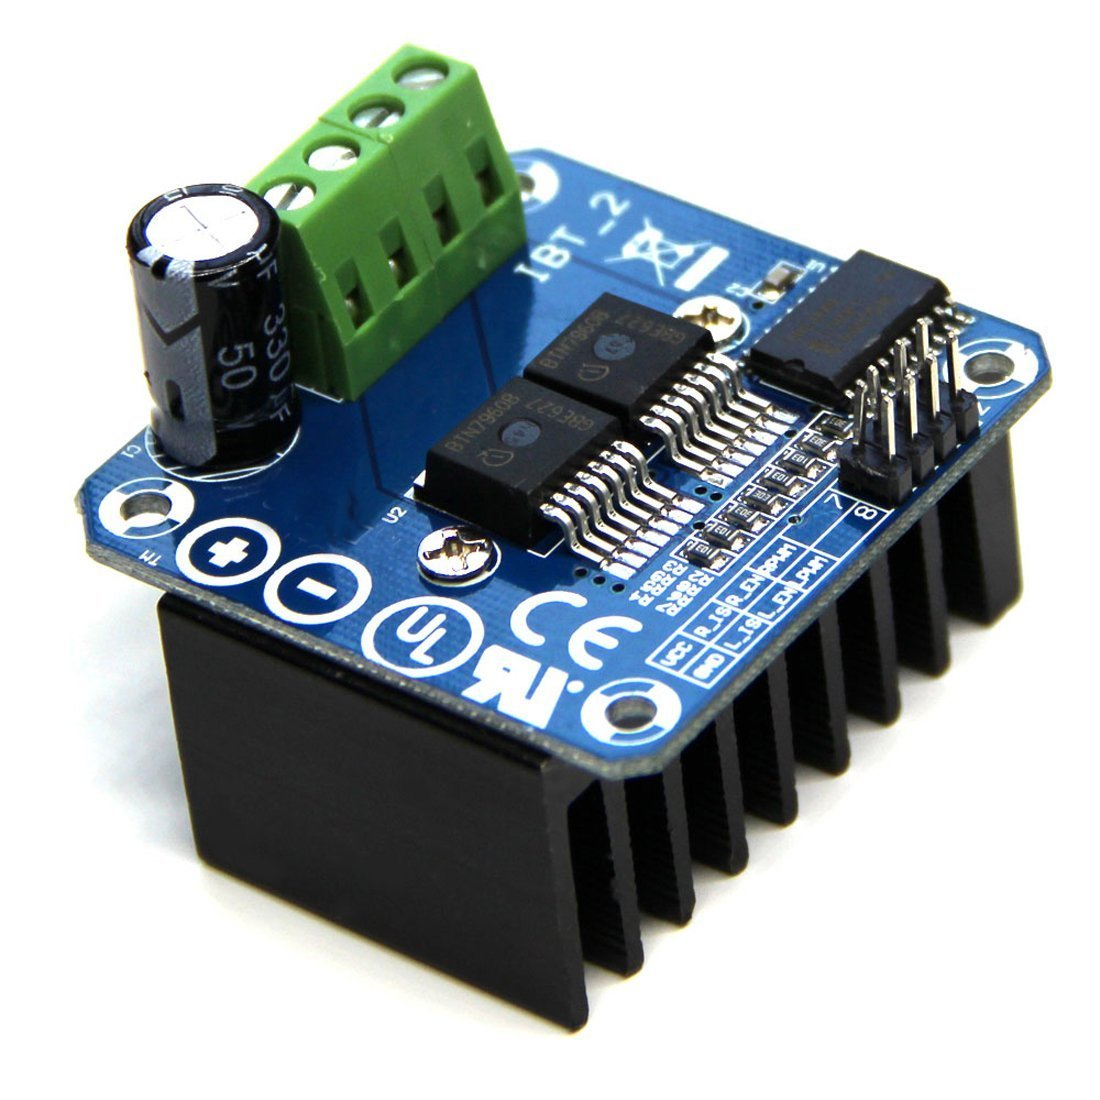 Hiletgo Bts7960 43a High Power Motor Driver Module Smart Mcu Control Speed And Direction Car For Arduino Current Limit Electronics